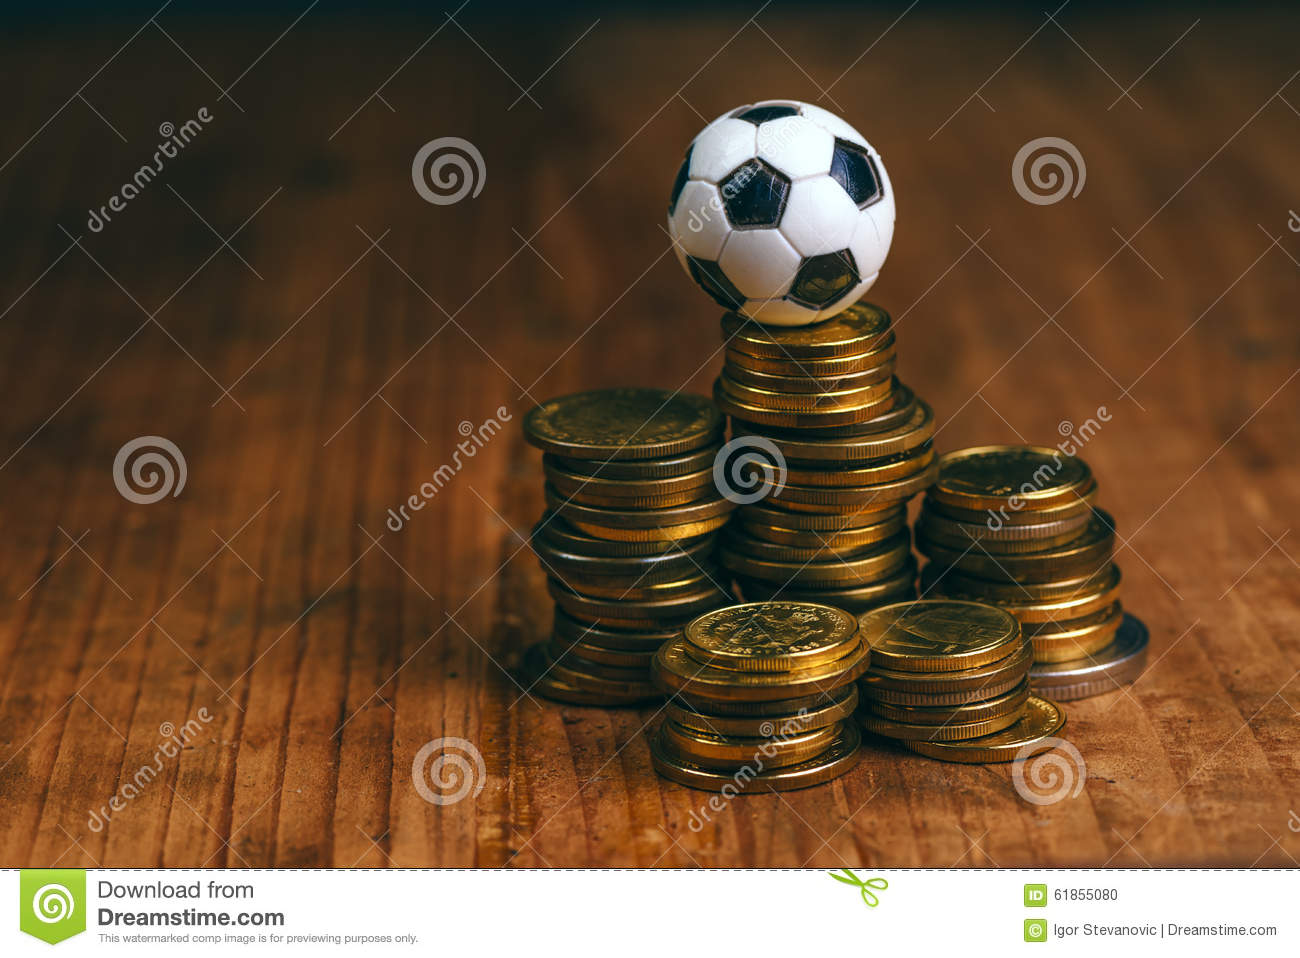 the money making world of sports Early beginnings to the current world of sports history jump to baseball basketball football ice hockey golf   fashions now often reflect sports clothing, partly because of the money injected into sports by fashion houses and partly because of our desire to emulate our heroes and heroines.